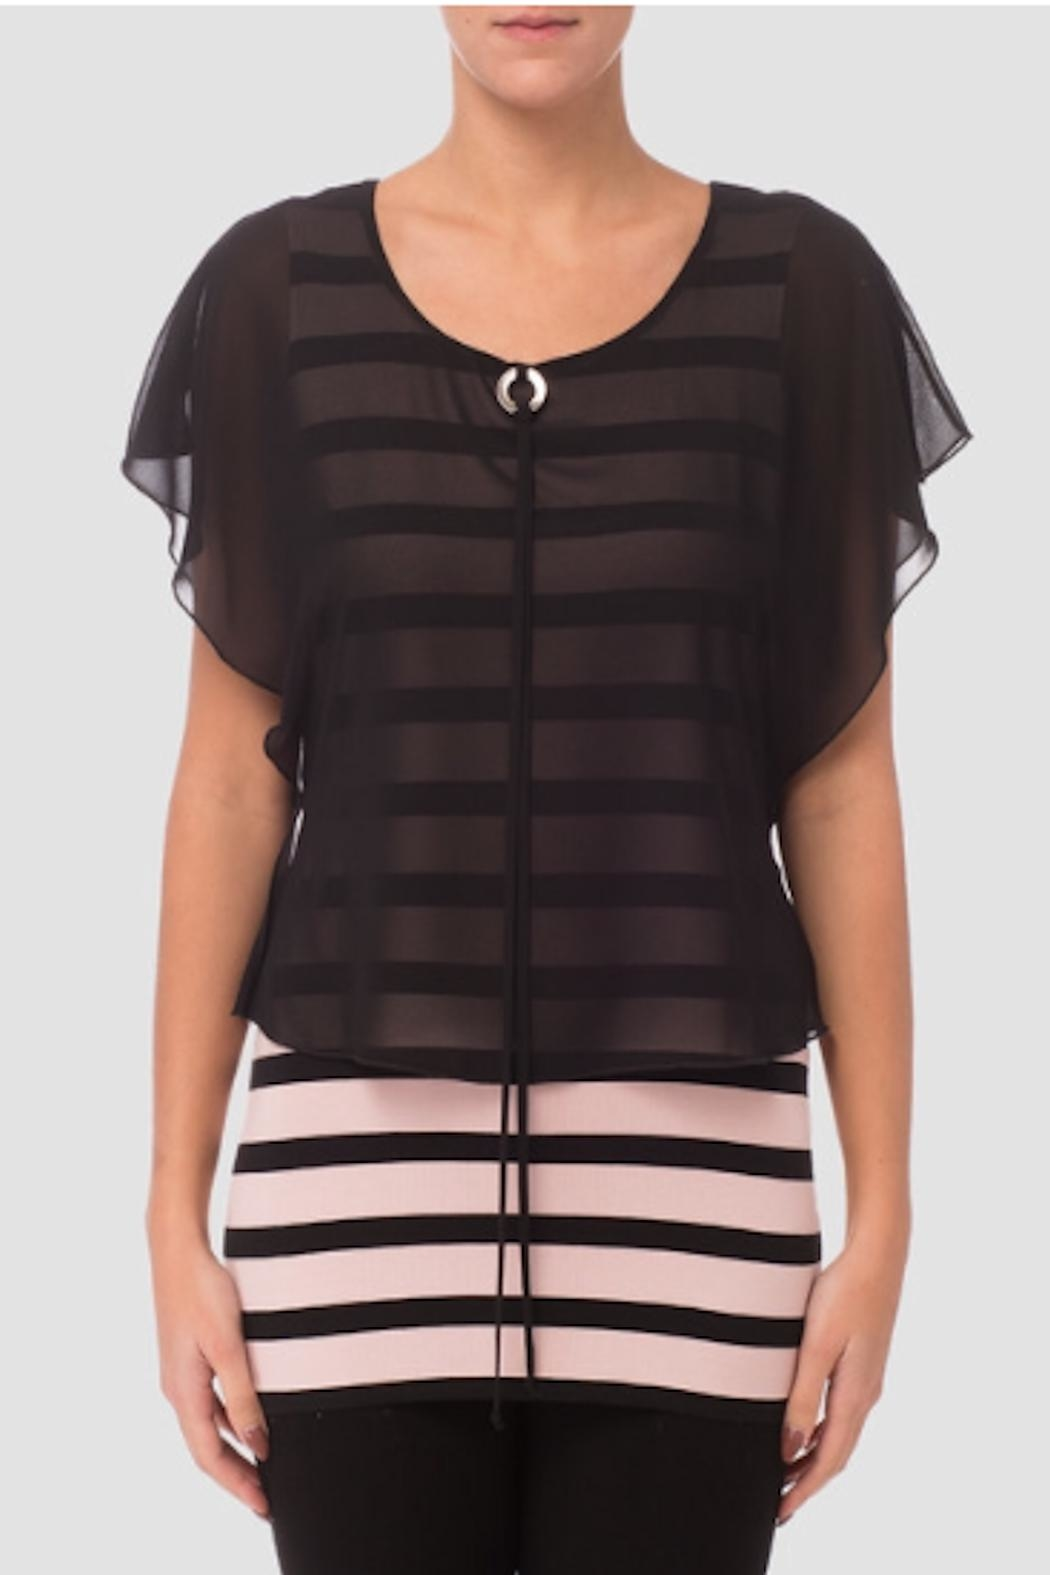 Joseph Ribkoff Pink/black Top - Front Cropped Image